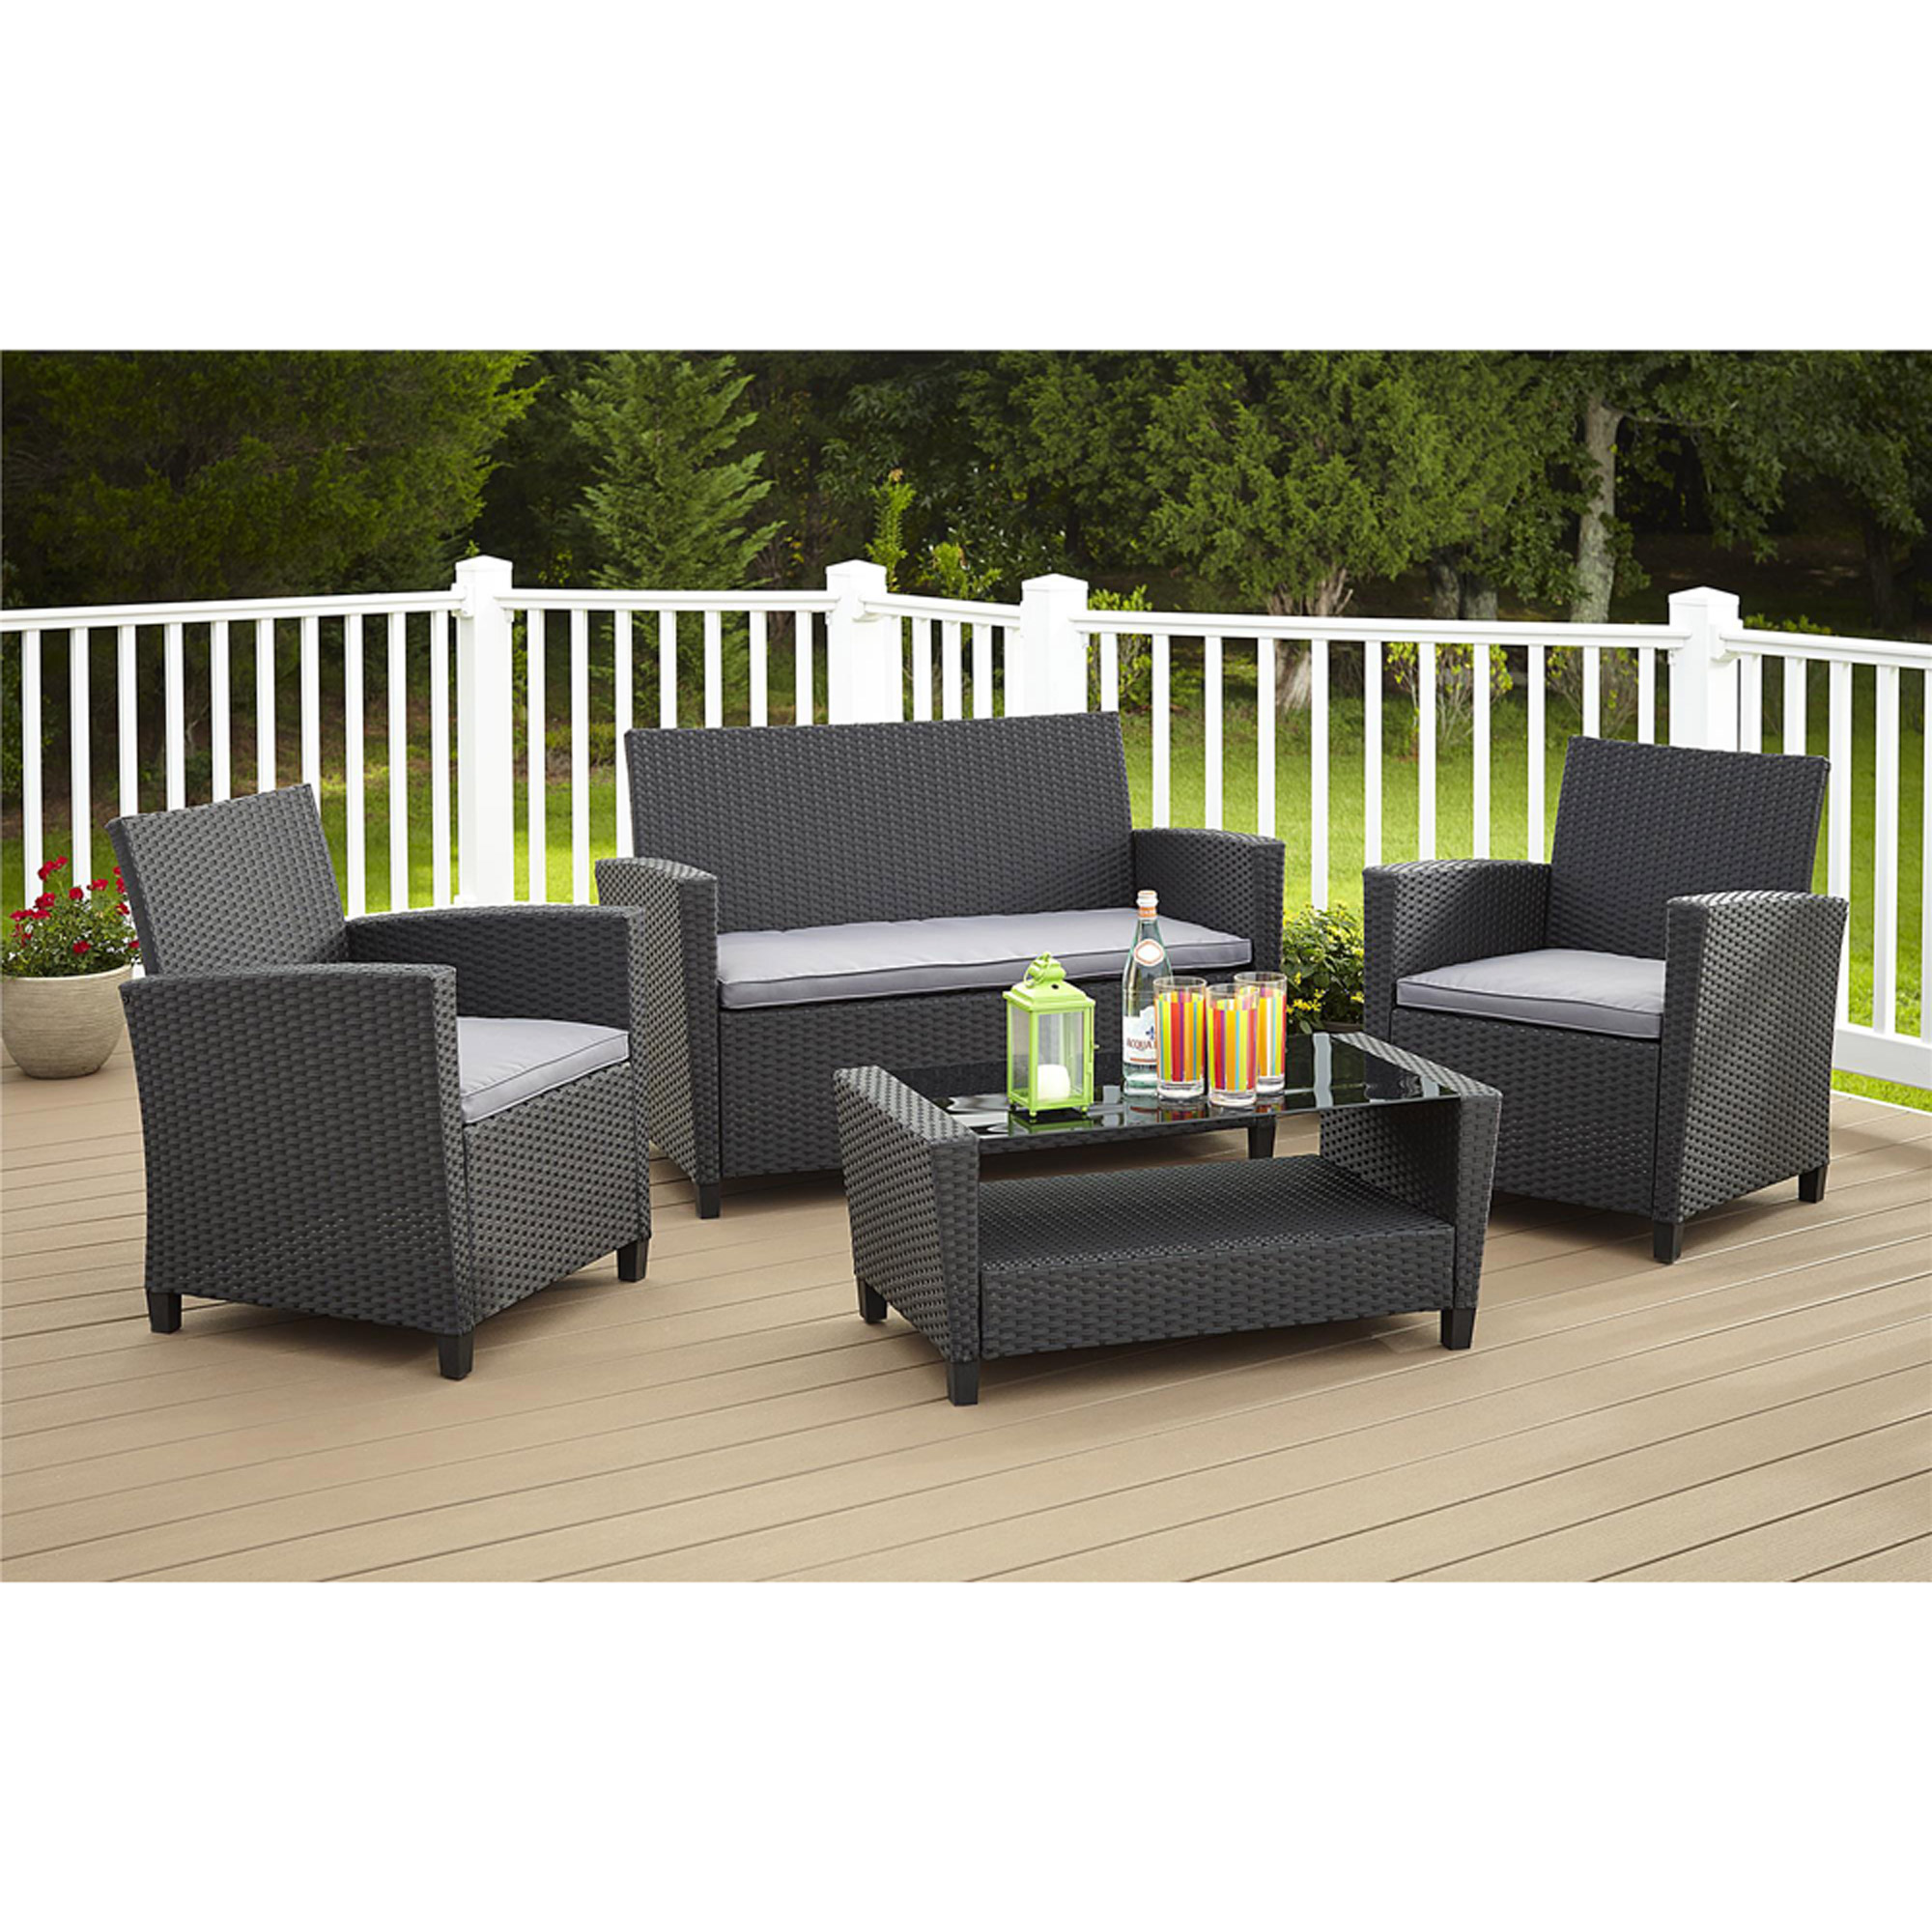 cosco outdoor malmo 4 piece resin wicker patio conversation set walmartcom